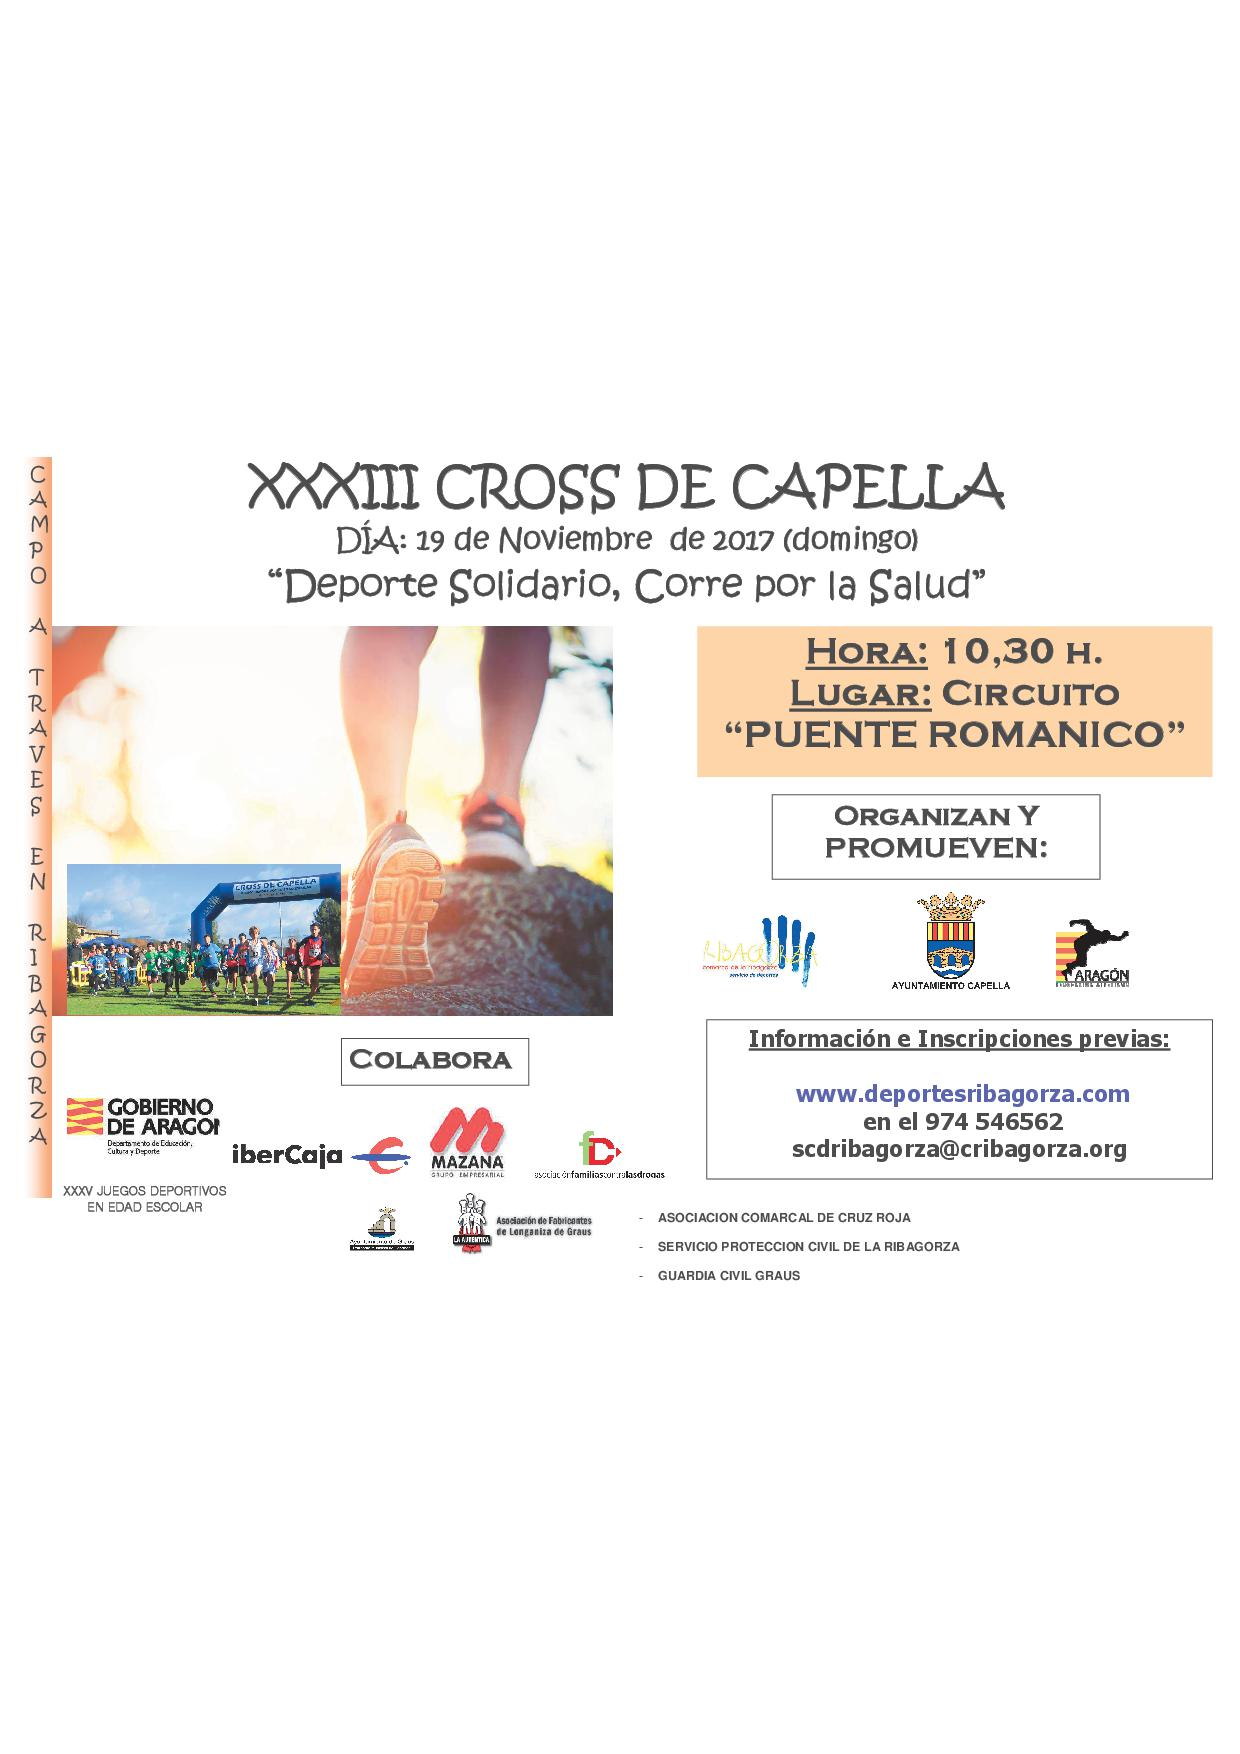 XXXIII CROSS DE CAPELLA